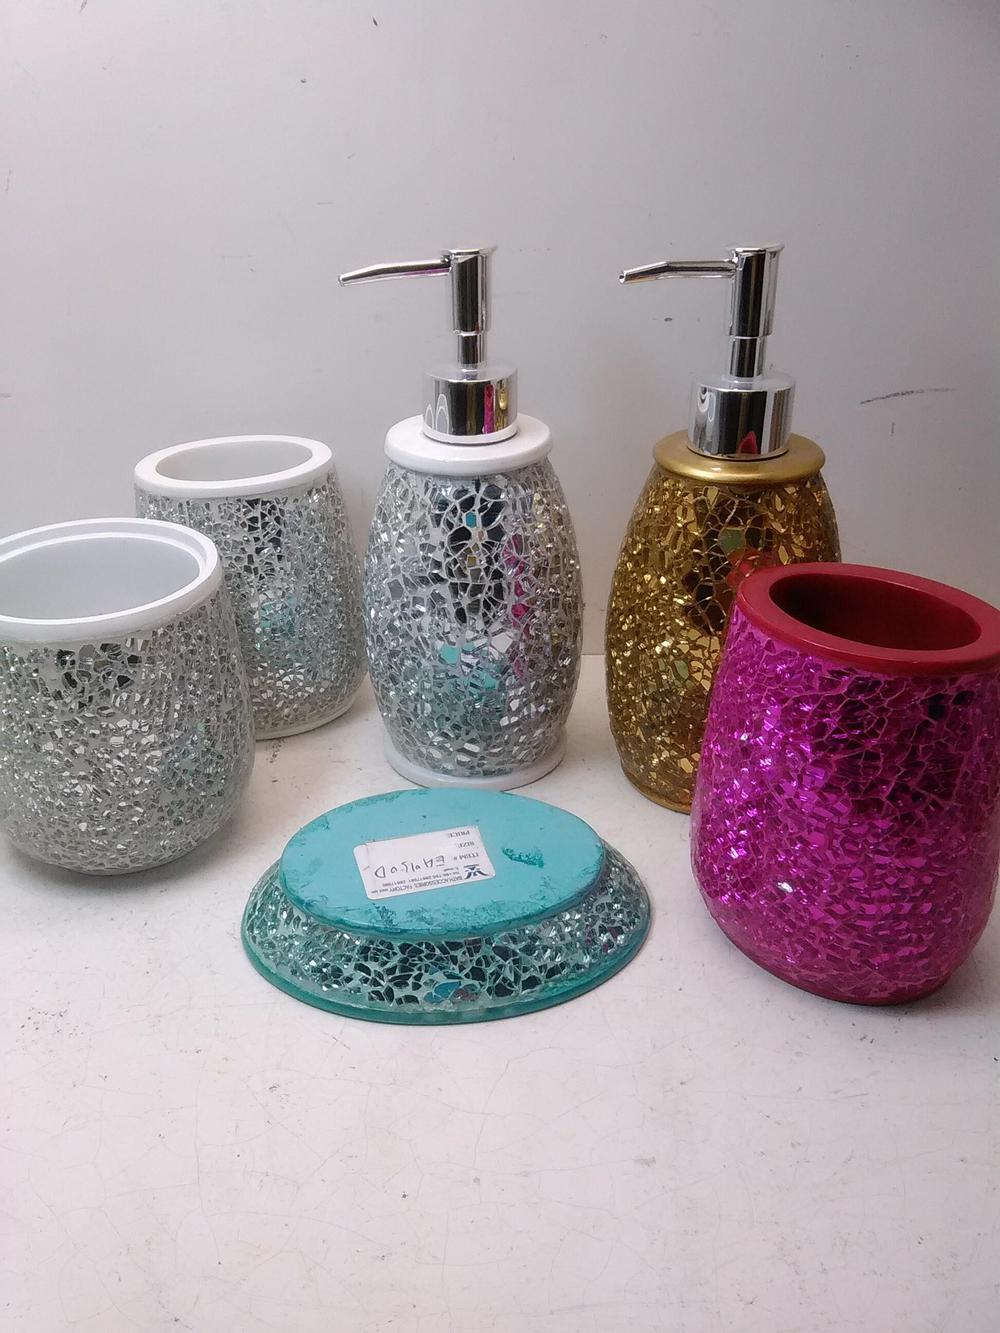 EA0101 silver bathroom accessories sets with soap dispenser and soap dish  also toiletbrush holder